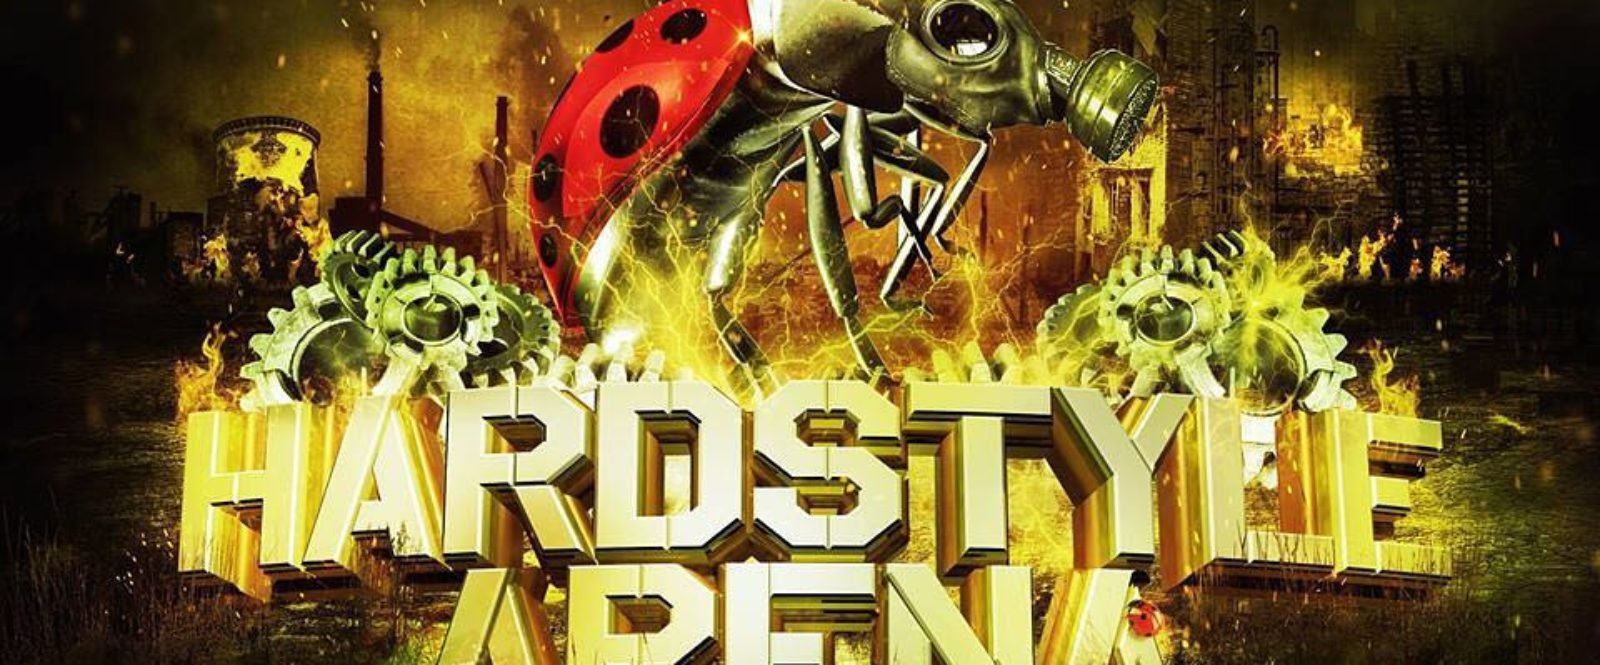 Lets get evil! Evil Activities was just added to rock the ‪HardstyleArena‬